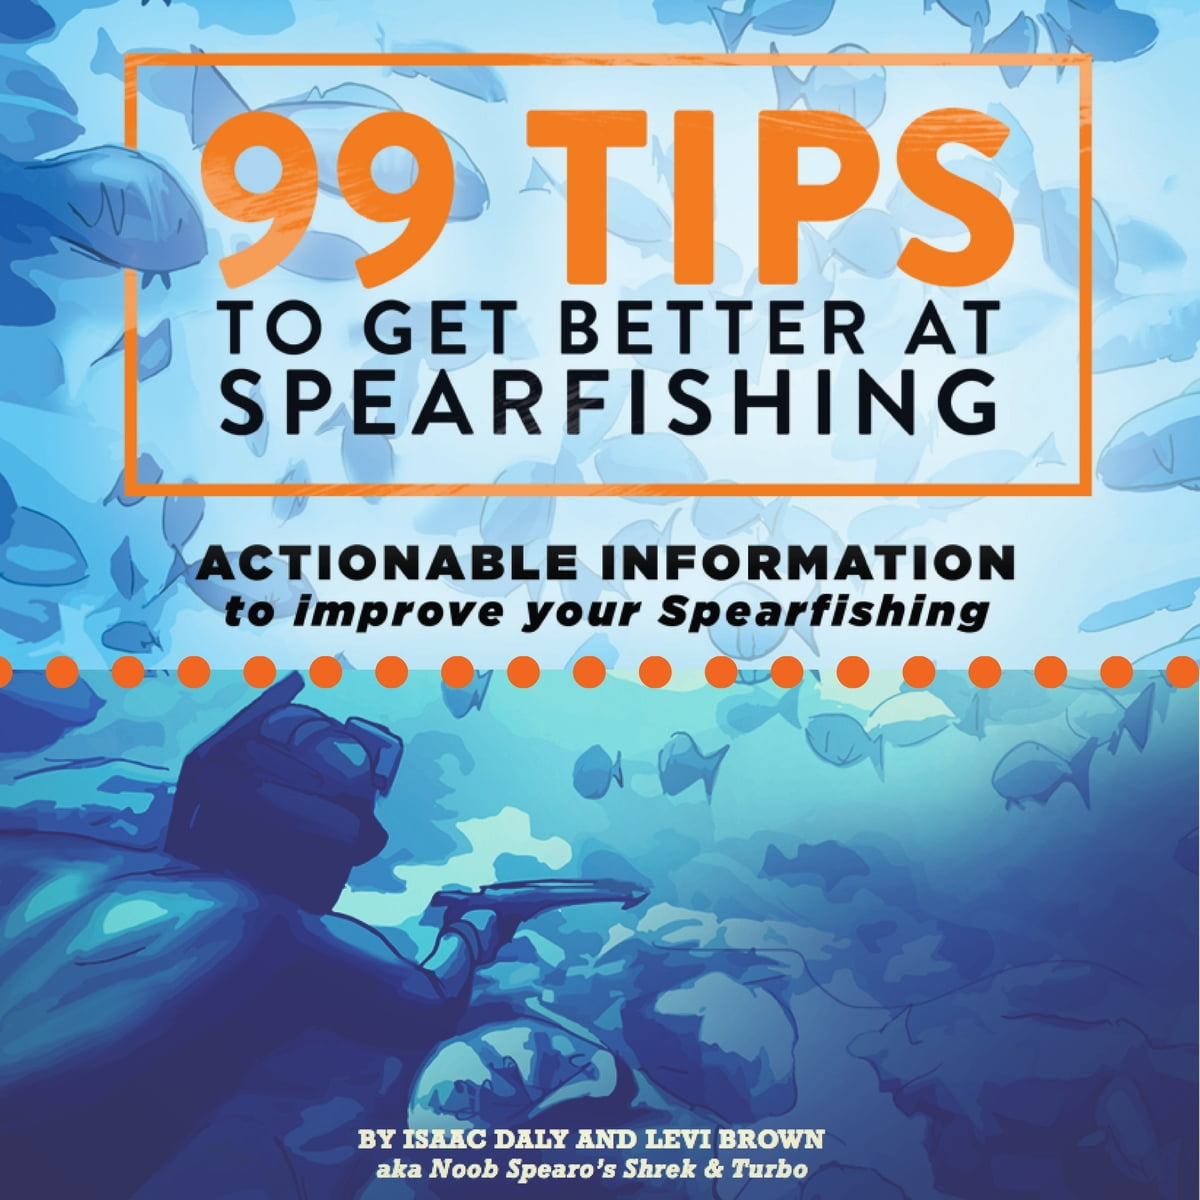 99 tips to get better at spearfishing free download